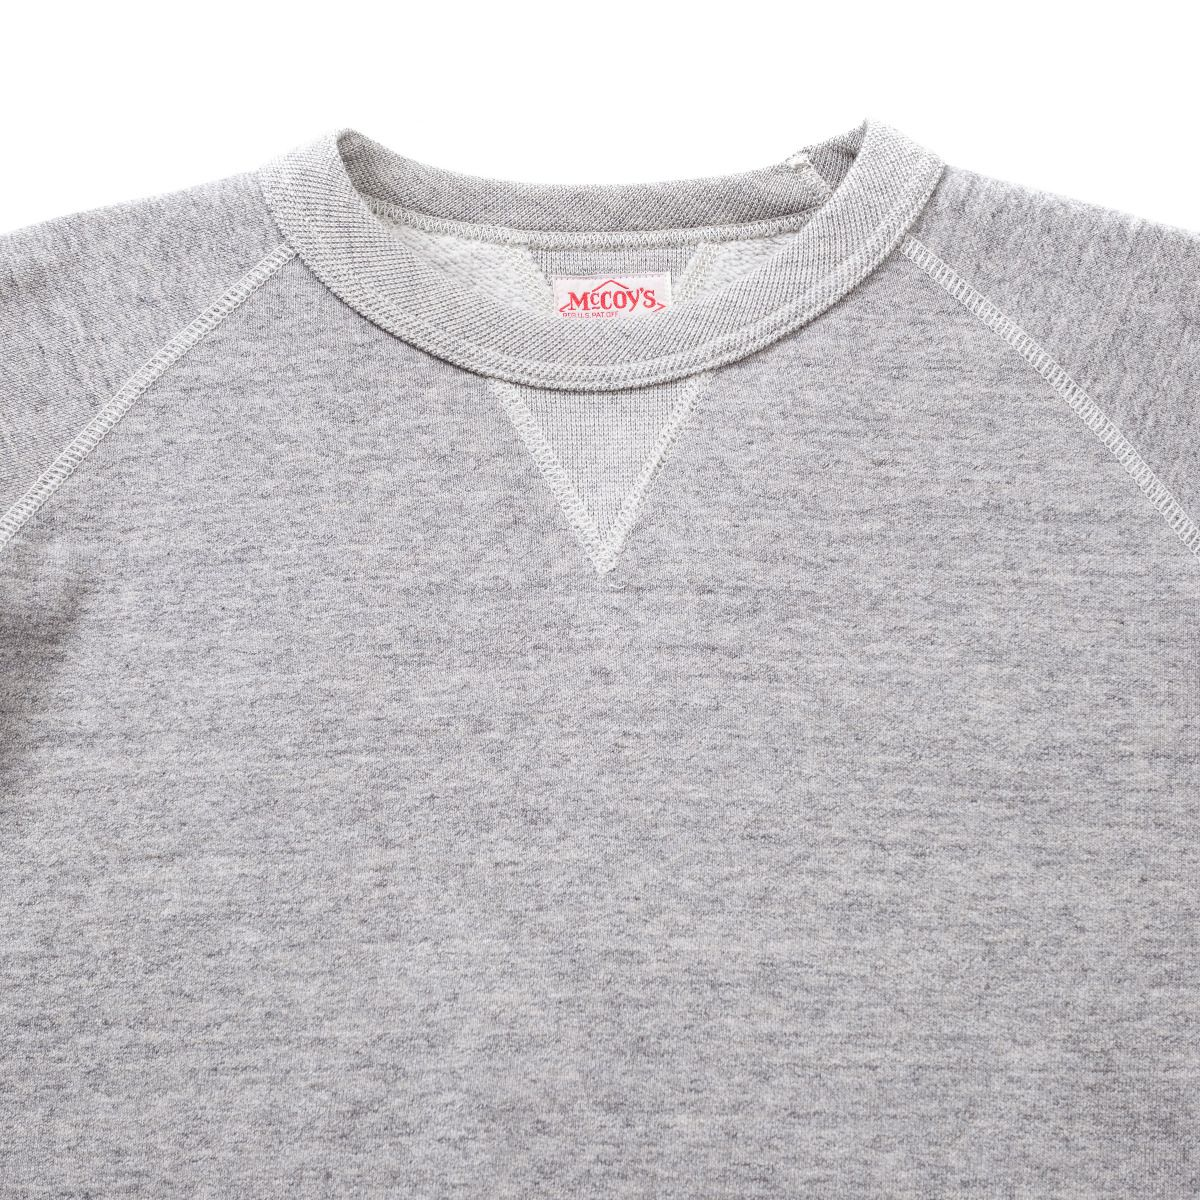 THE REAL MCCOY'S JOE MCCOY 10OZ SWEATSHIRT GREY